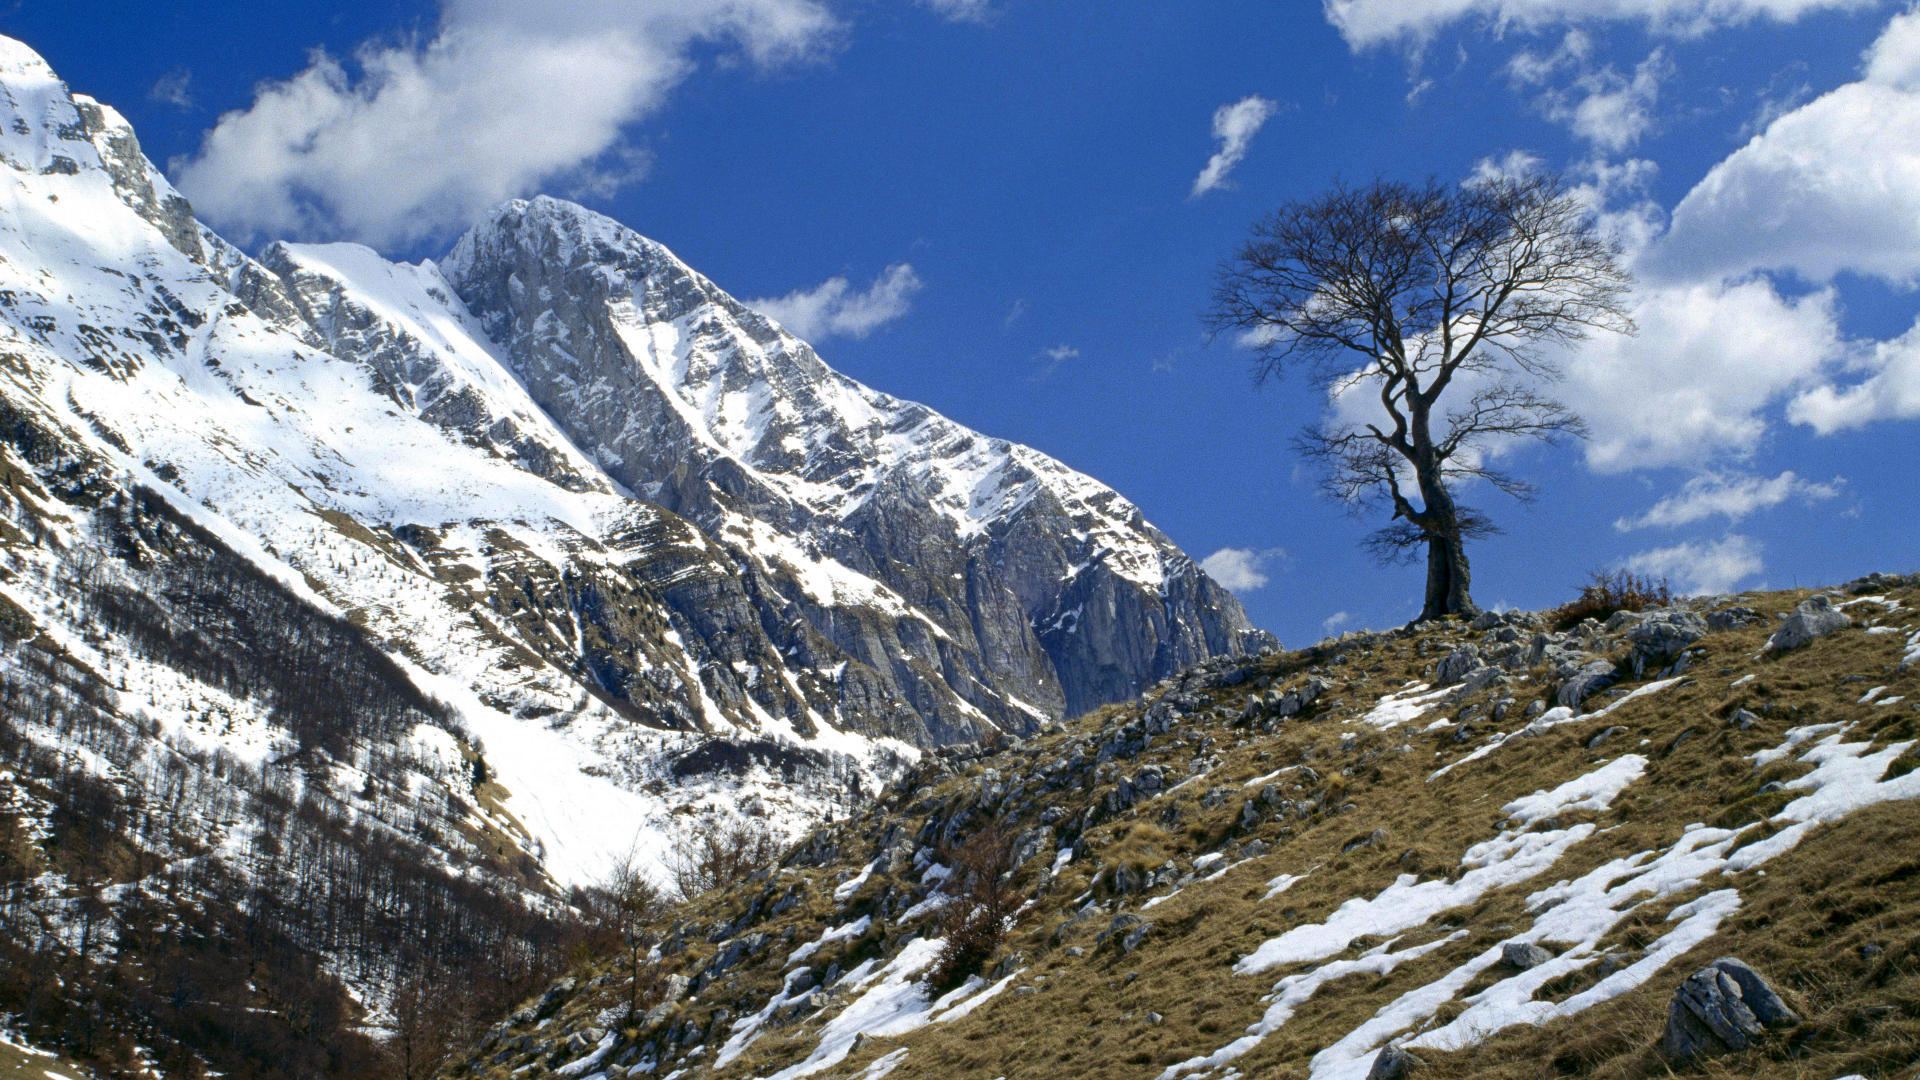 Lonely tree on the mountain wallpapers and images - wallpapers ...